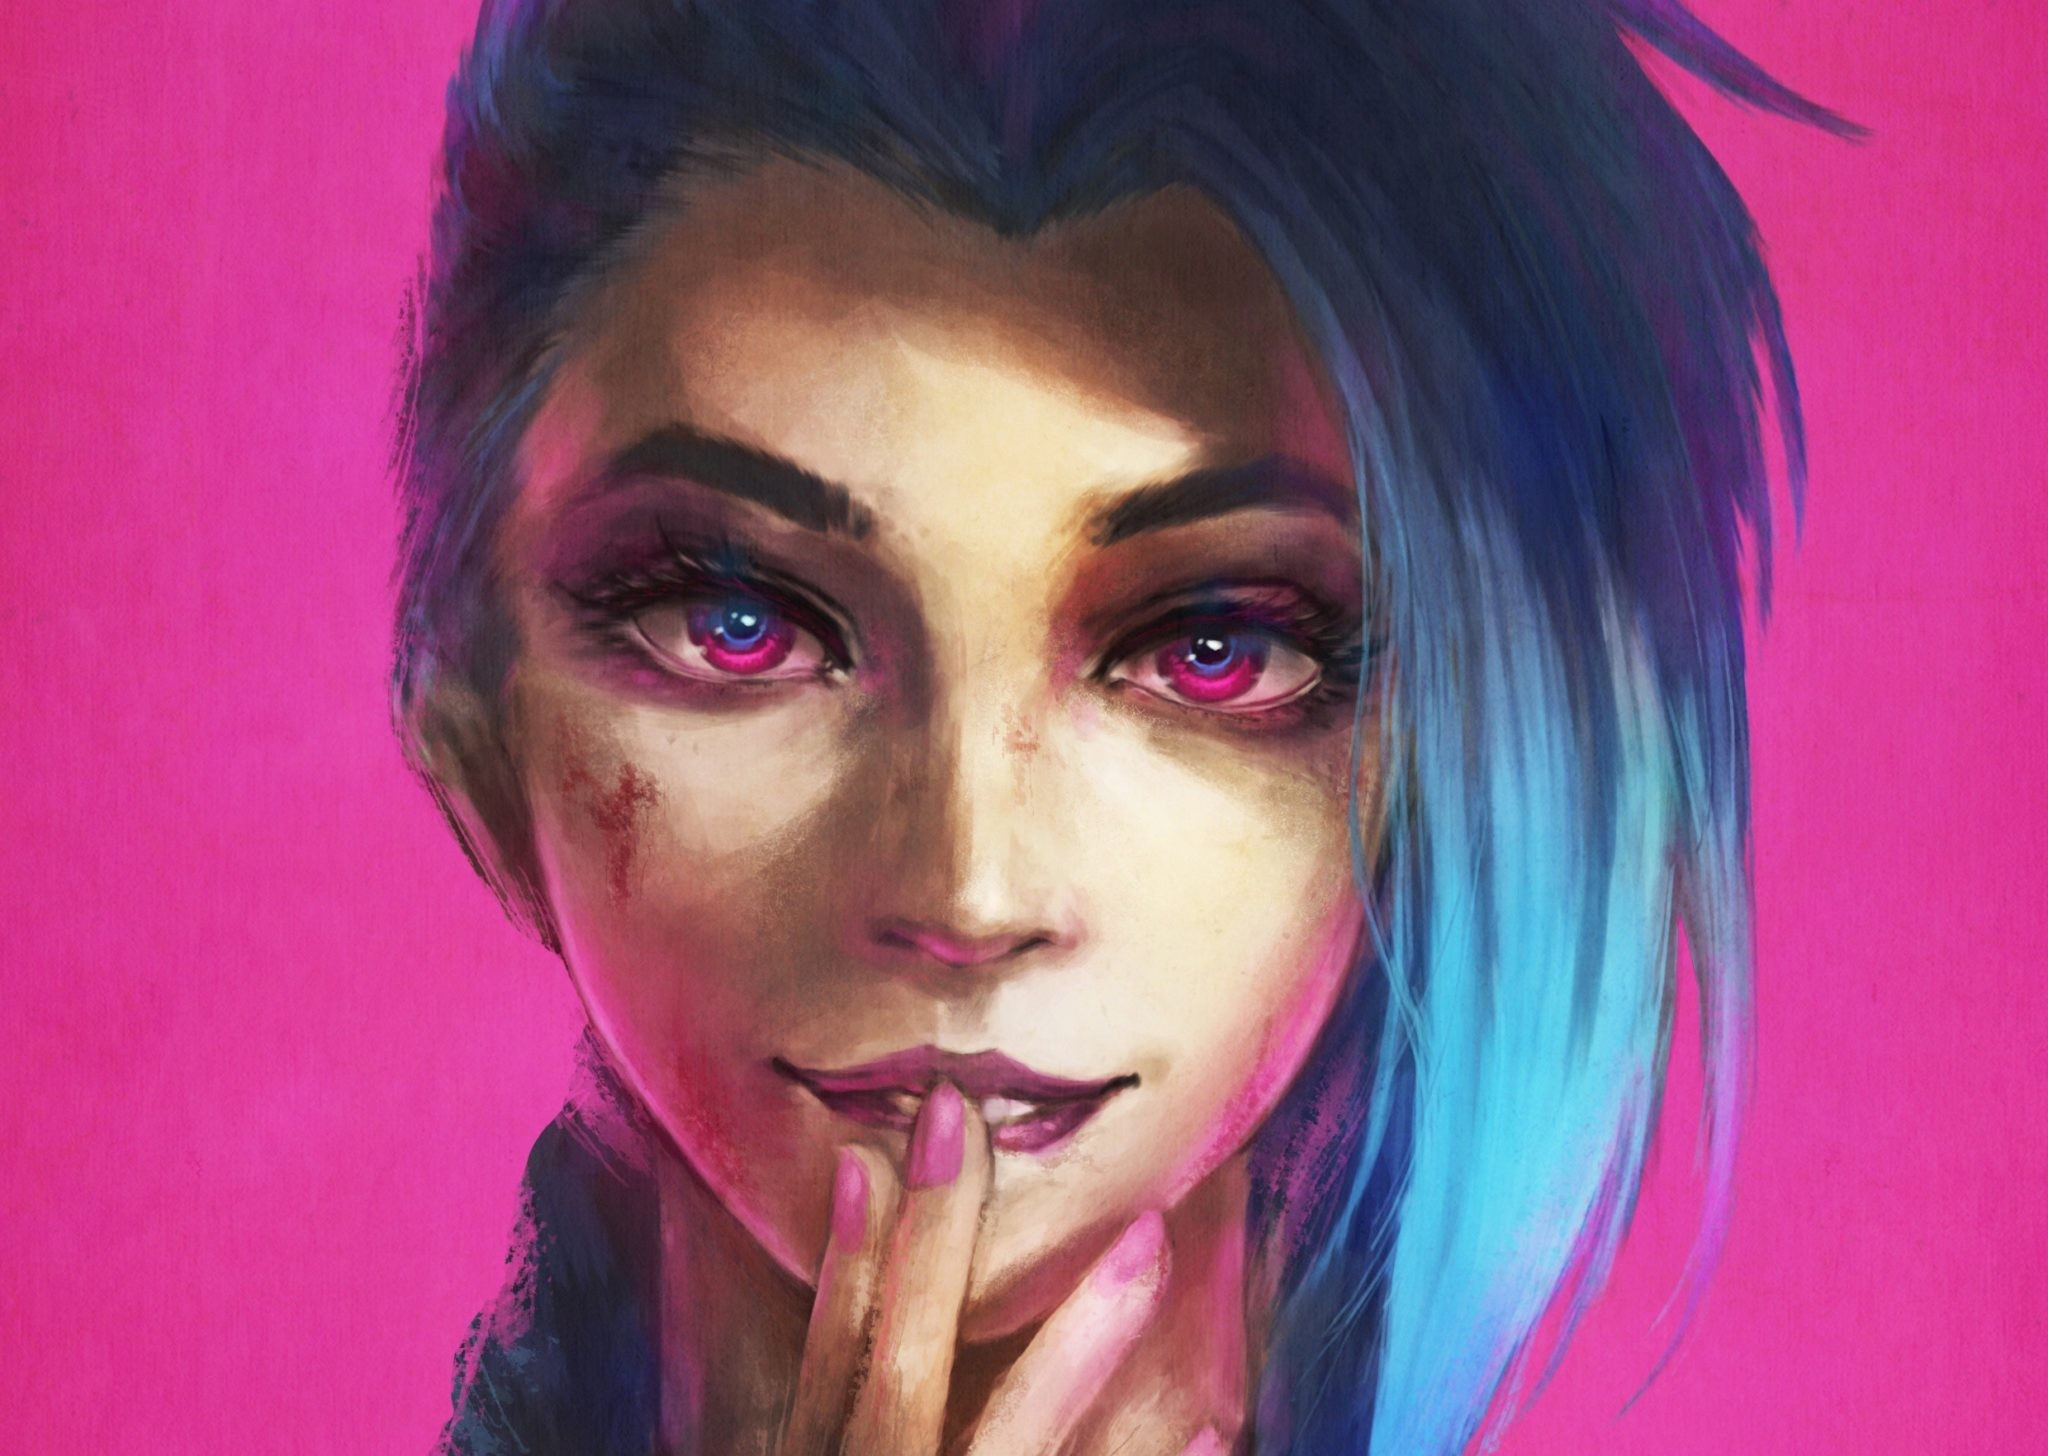 Jinx League of Legends Painting Wallpapers, Images